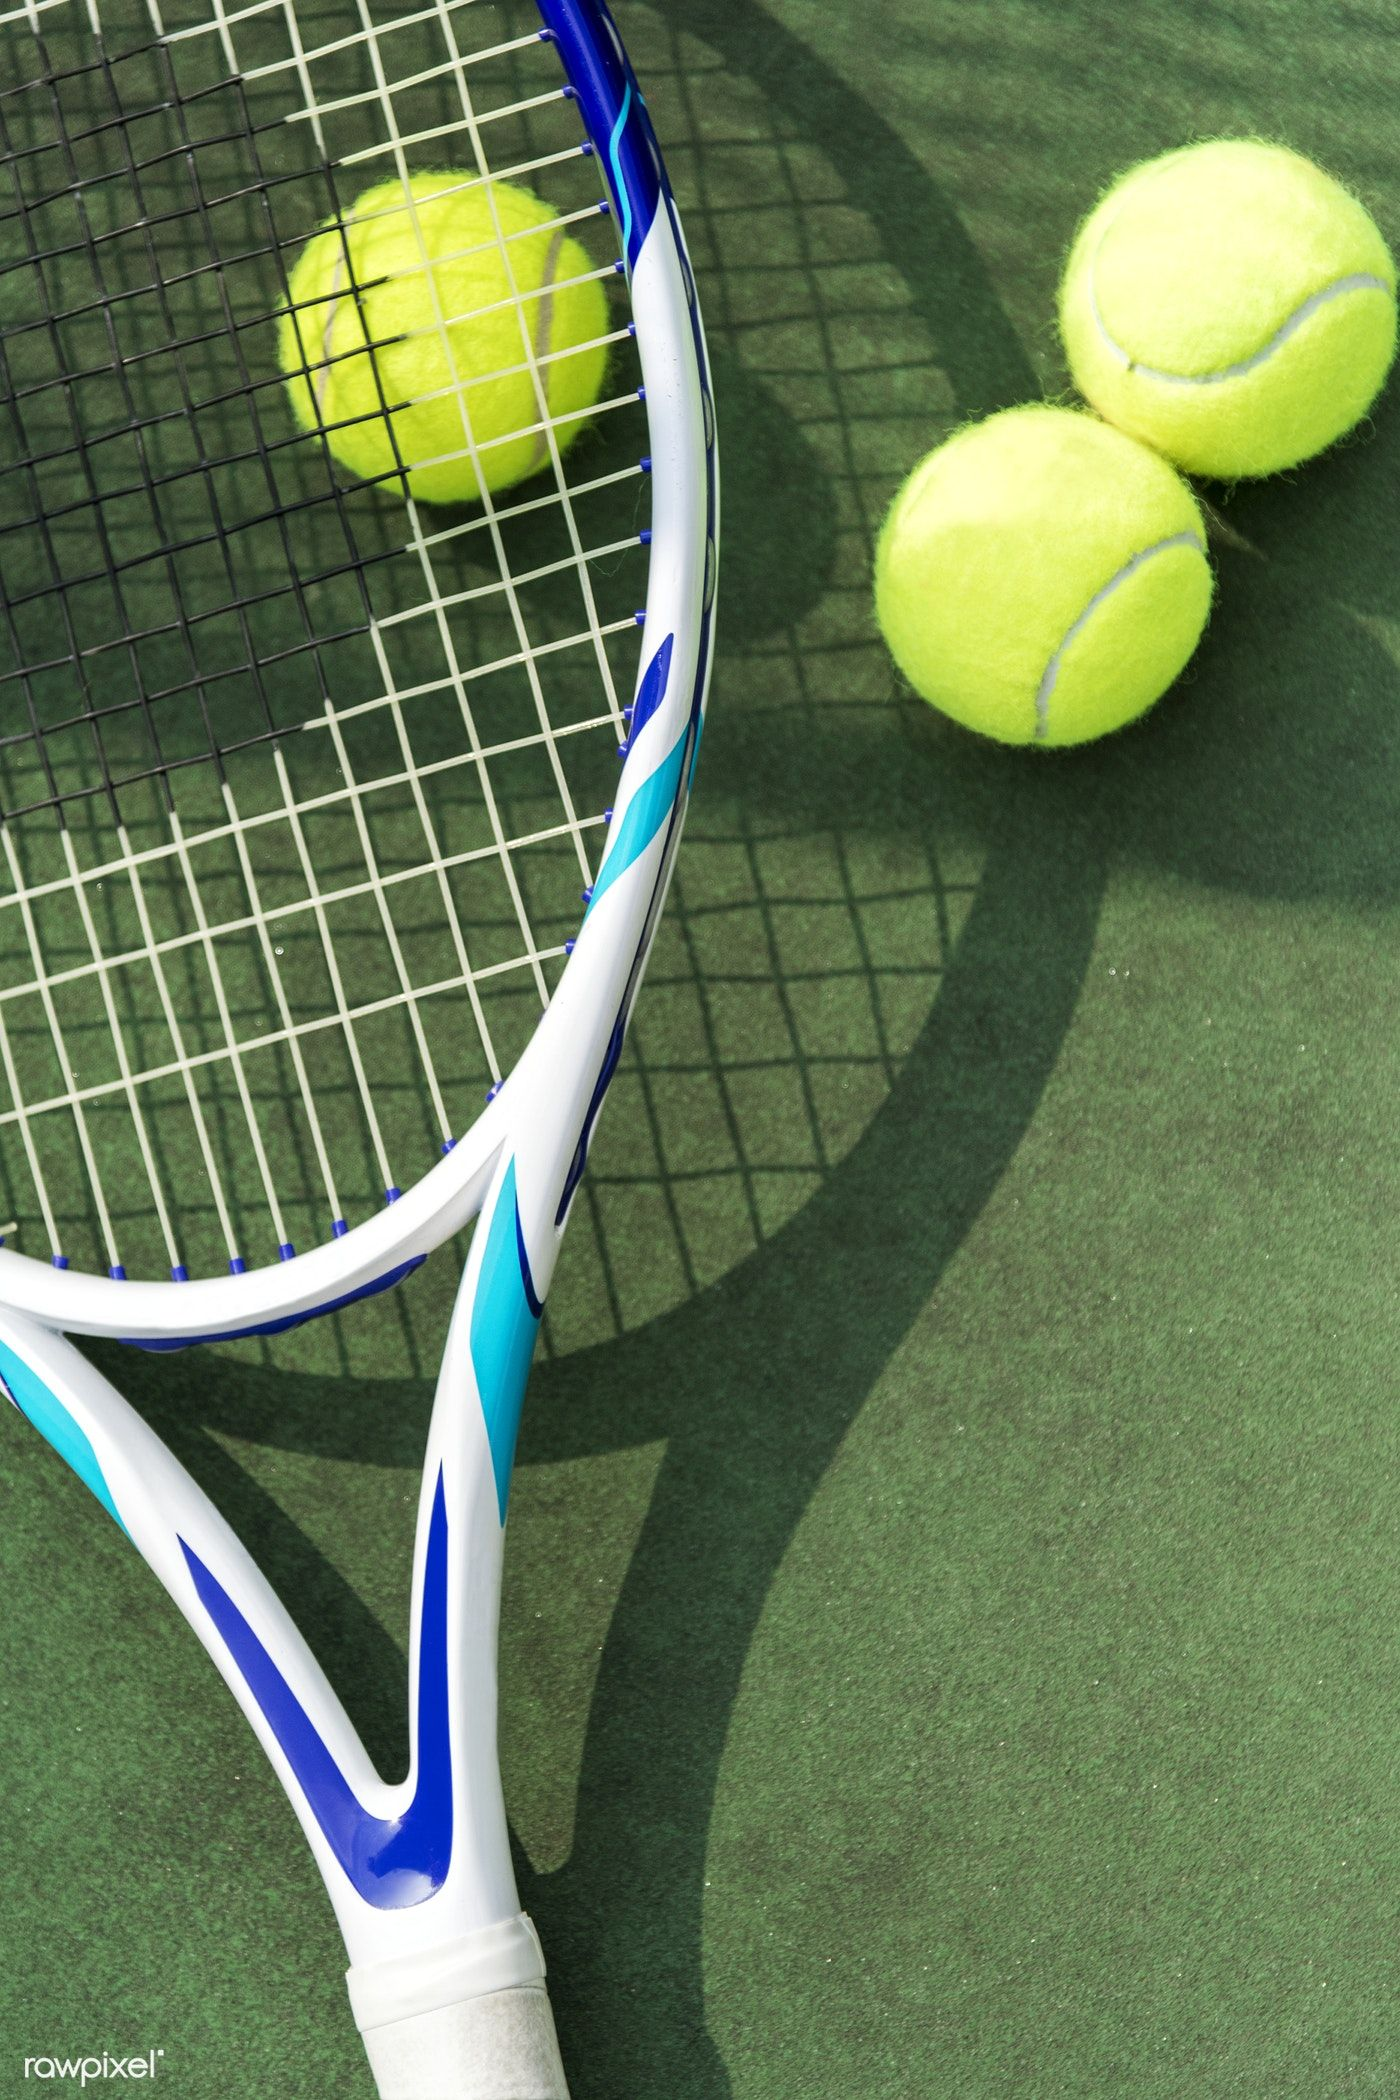 Download Premium Image Of Tennis Balls On A Tennis Court 413593 Tennis Balls Tennis Wallpaper Tennis Photography